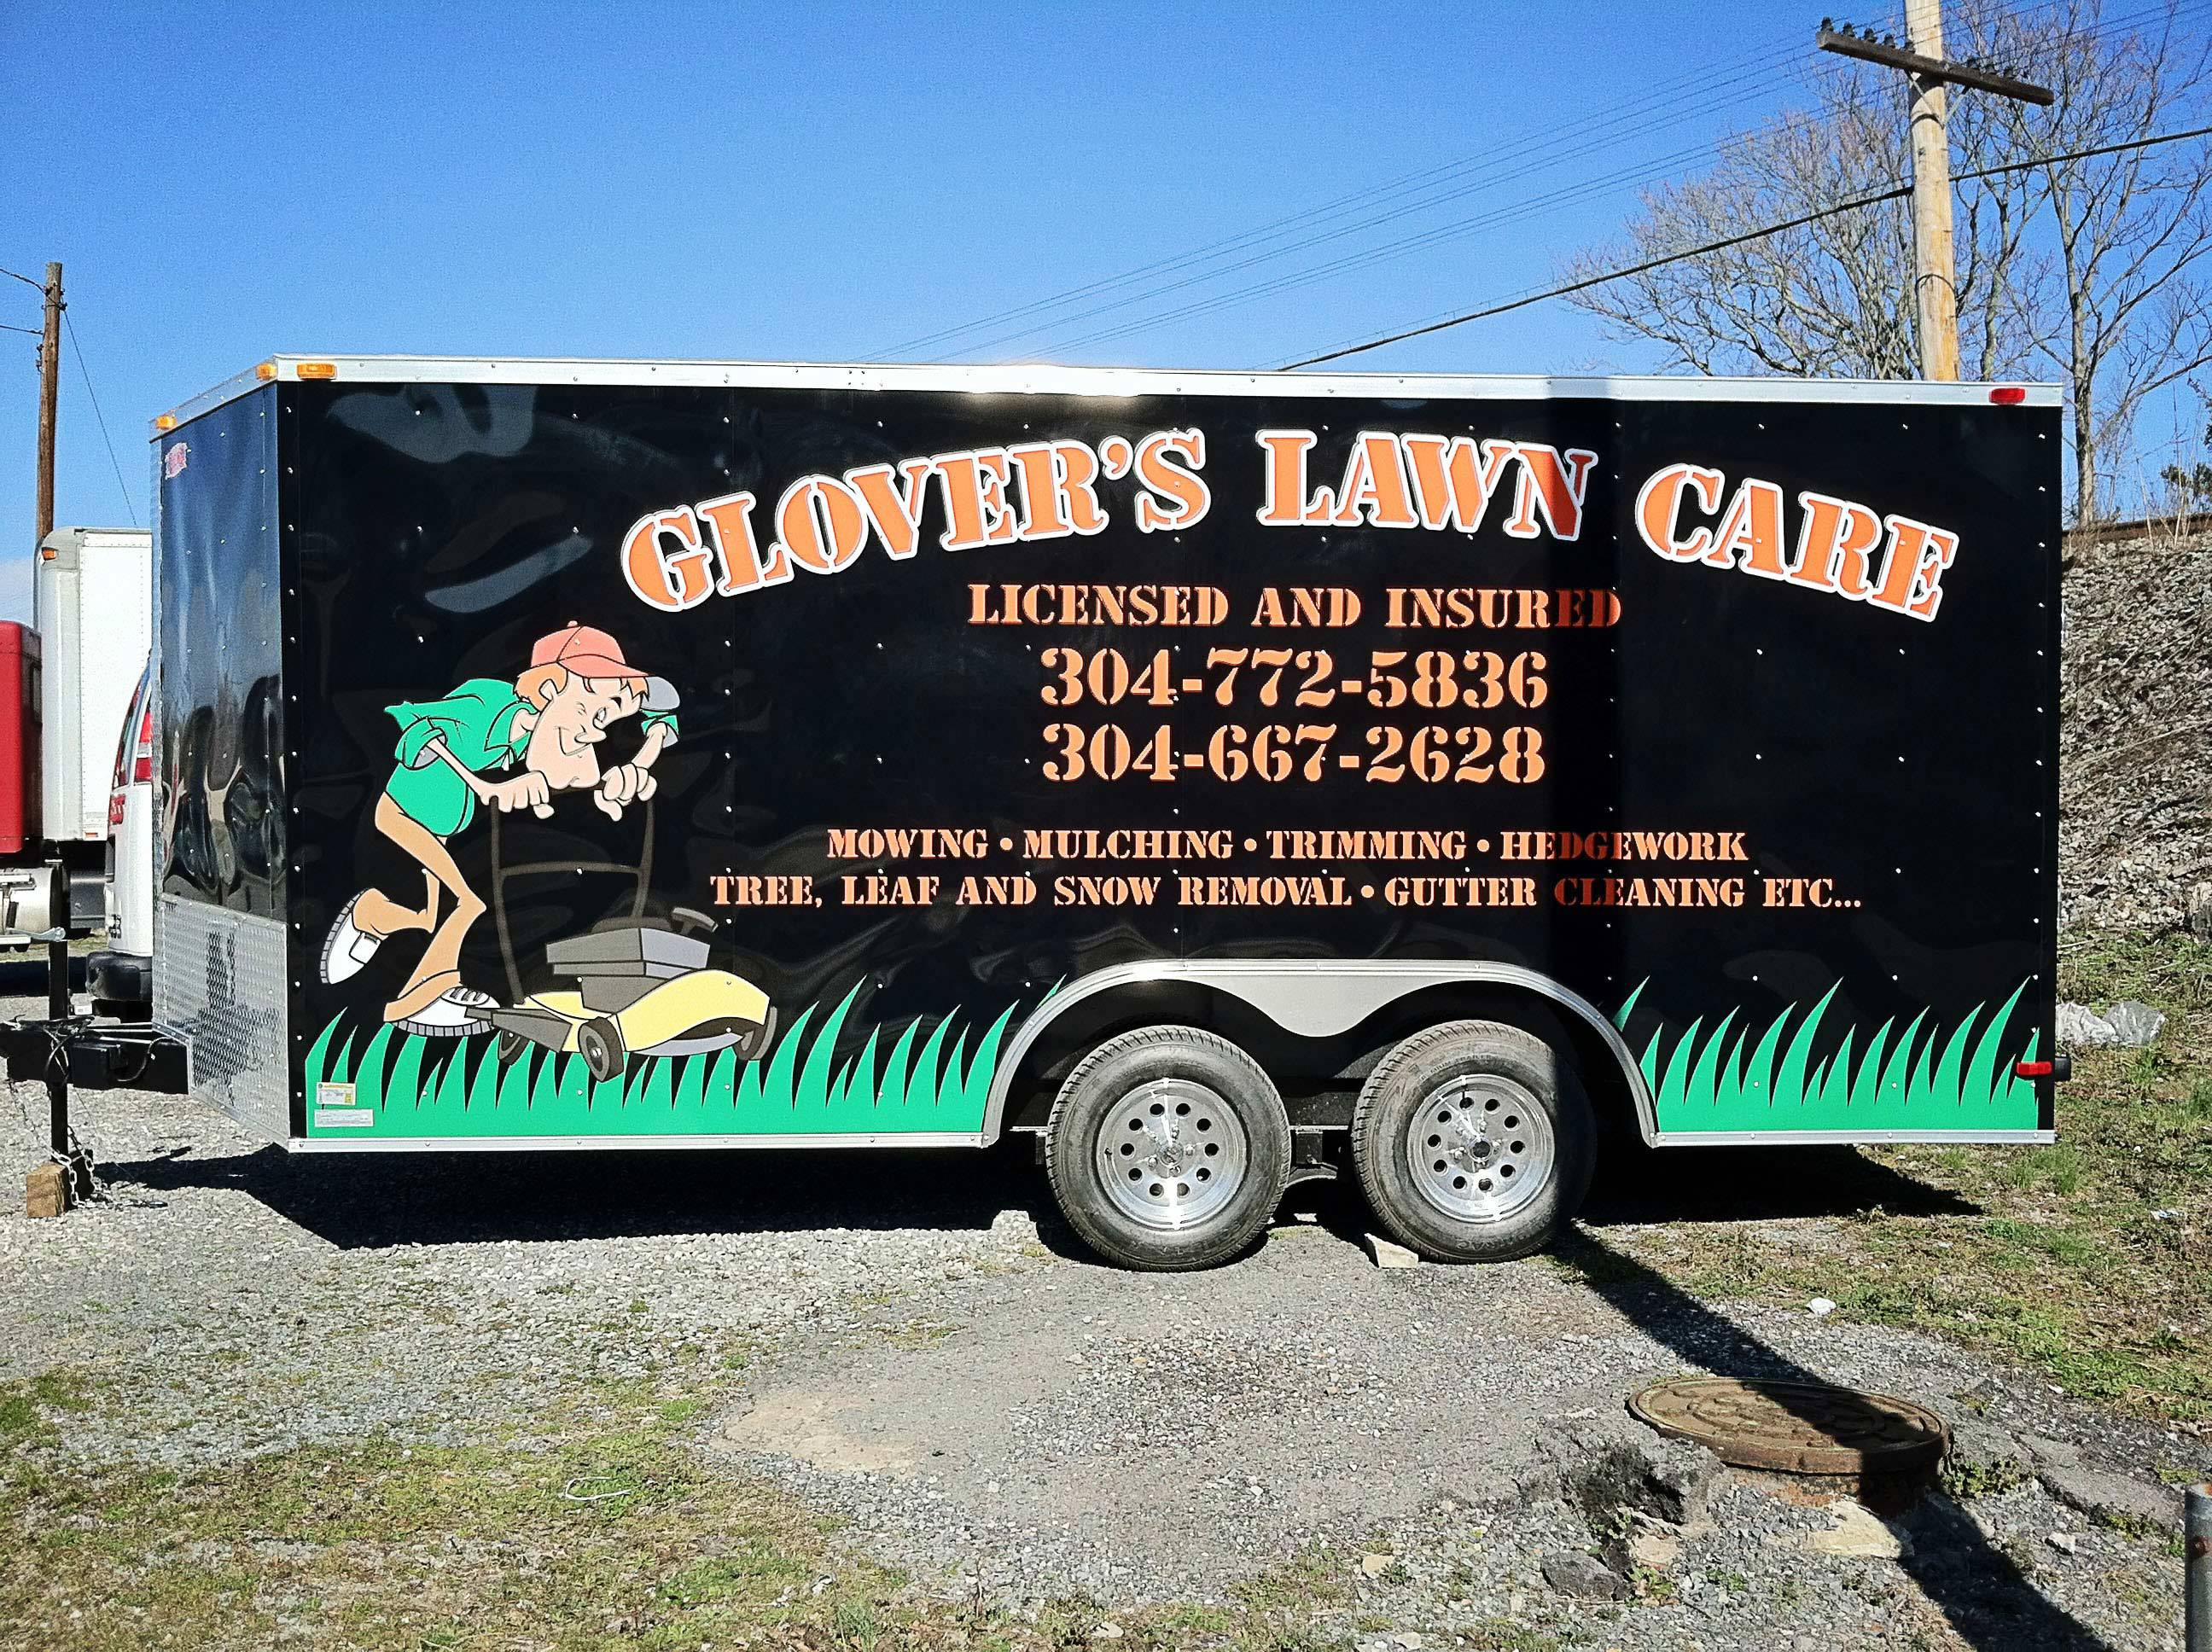 Business logo and banner displayed on a company's vehicle in Covington, VA